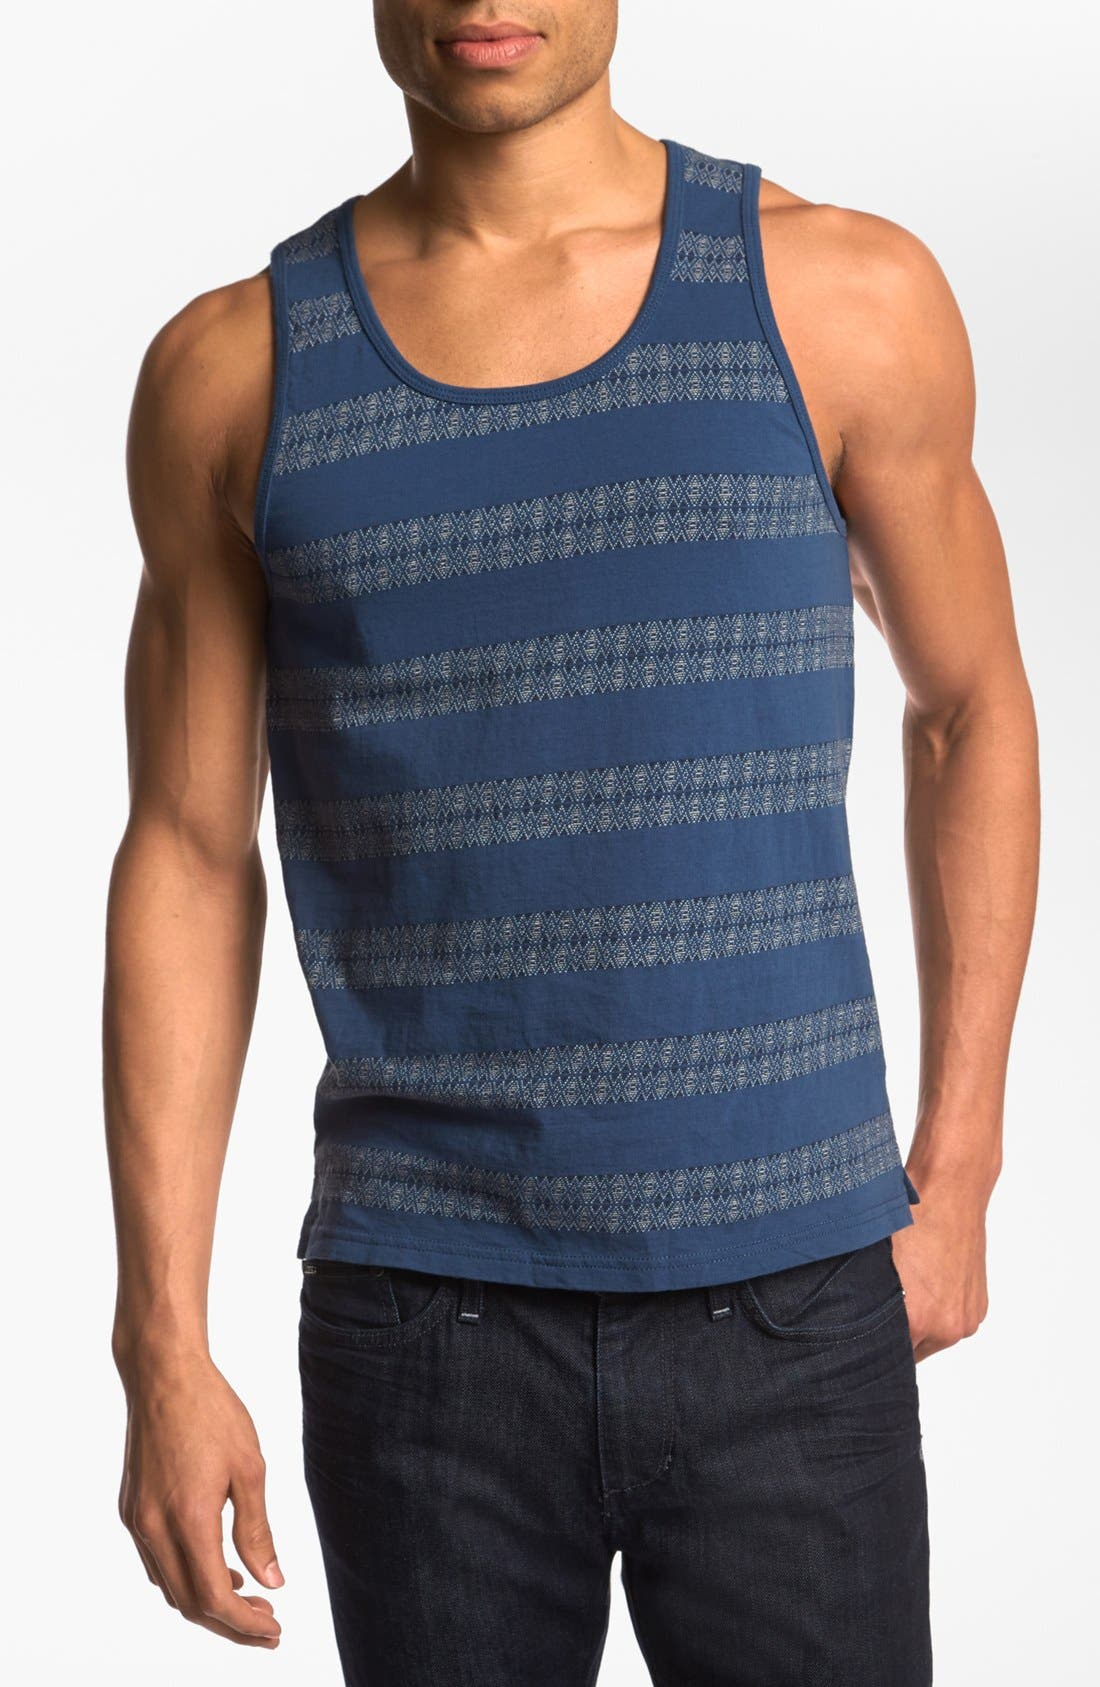 Alternate Image 1 Selected - Burkman Bros Jacquard Stripe Tank Top